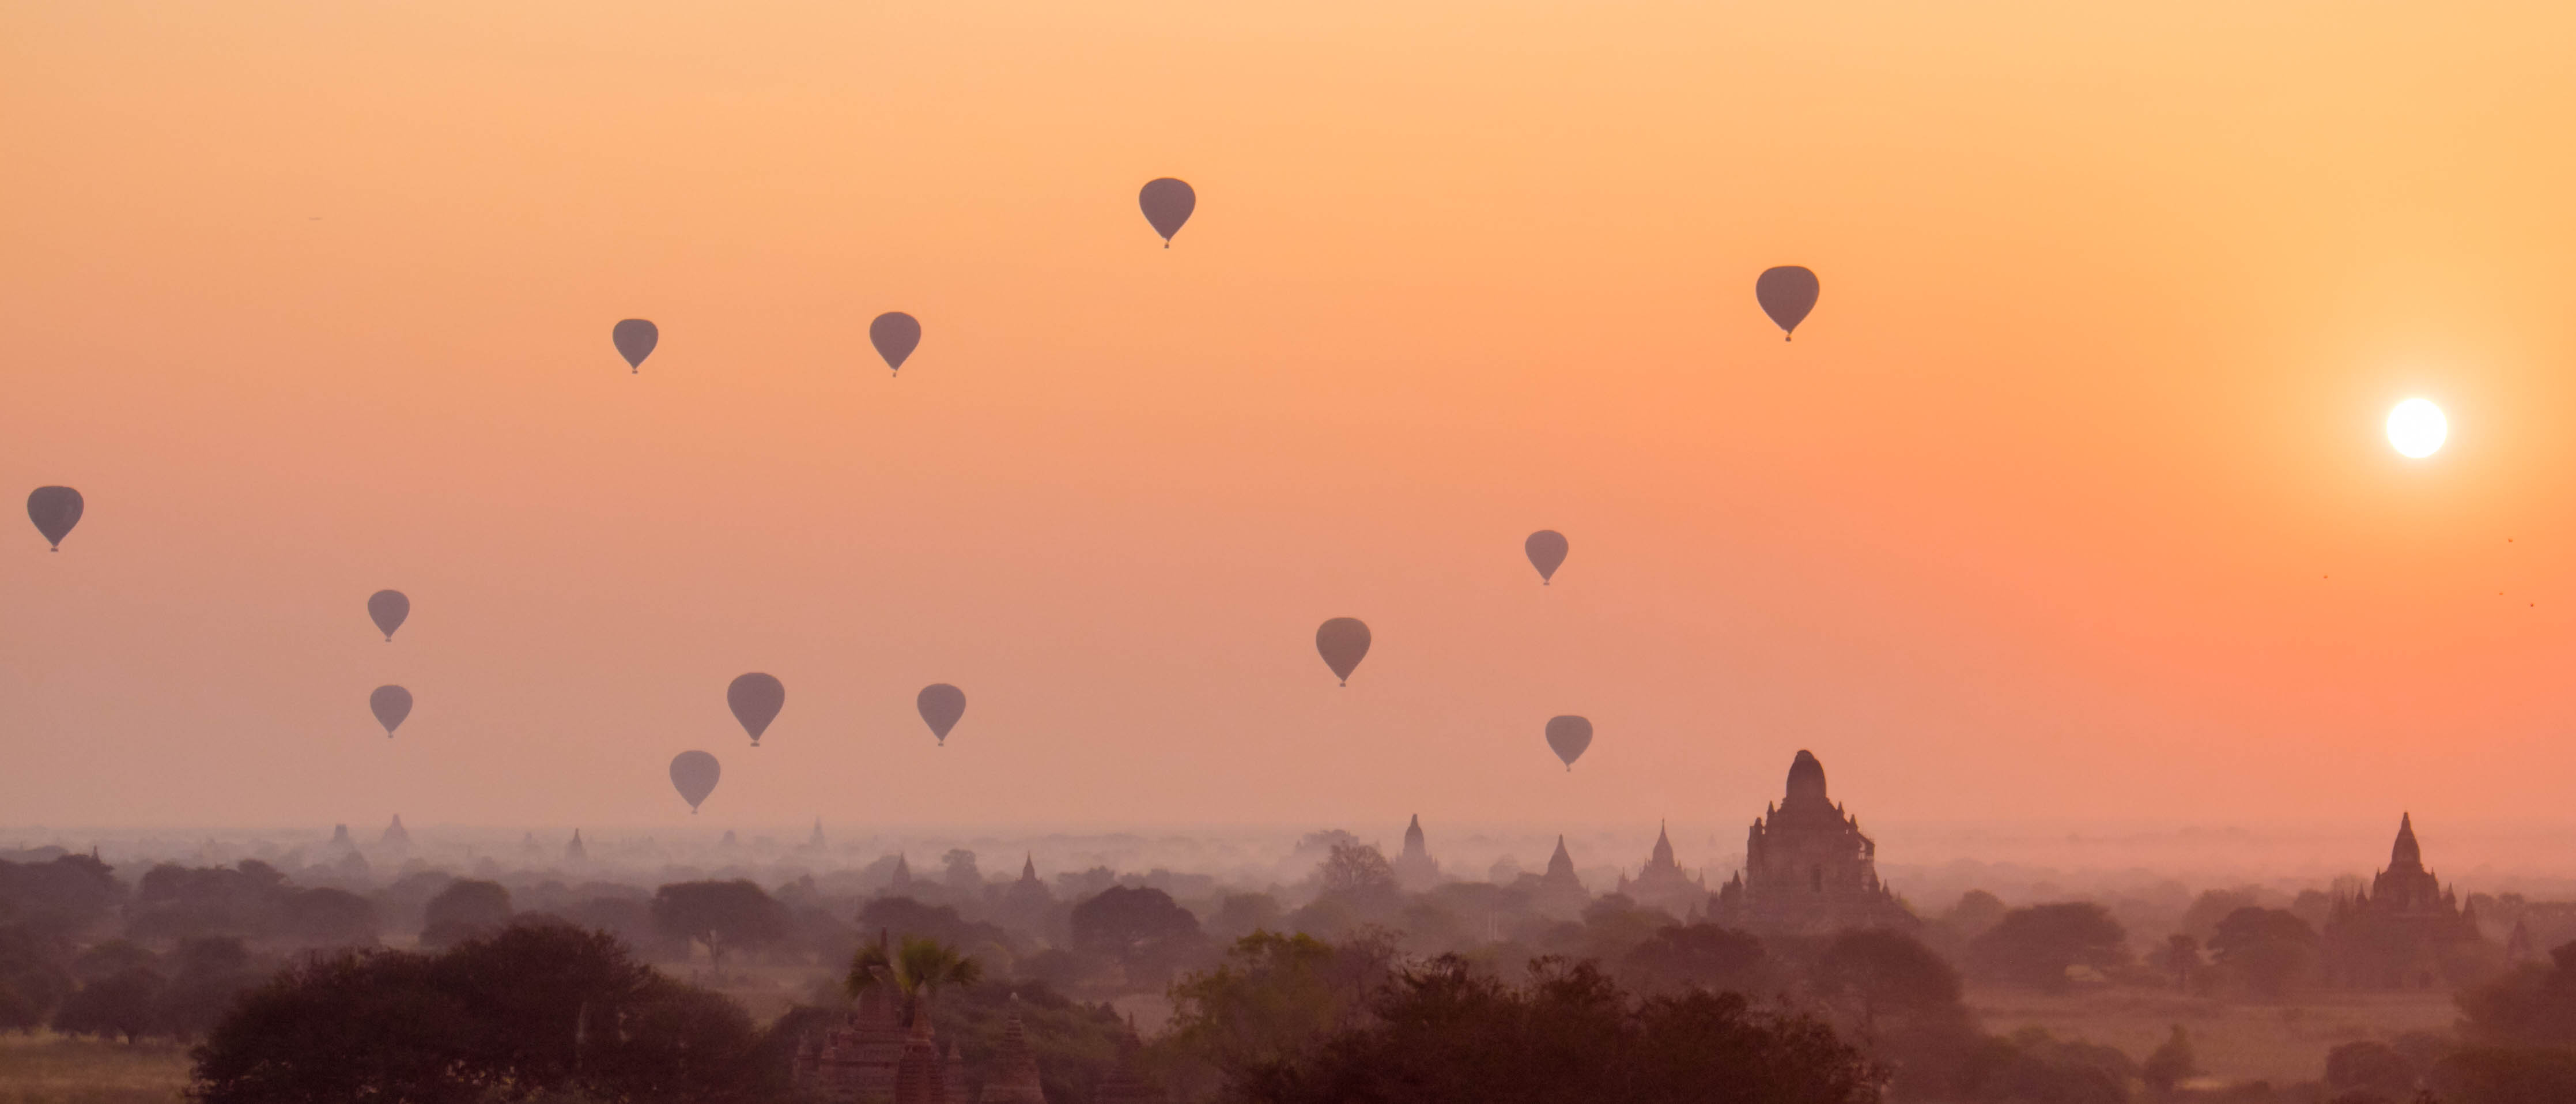 Bagan Ballons Sunrise